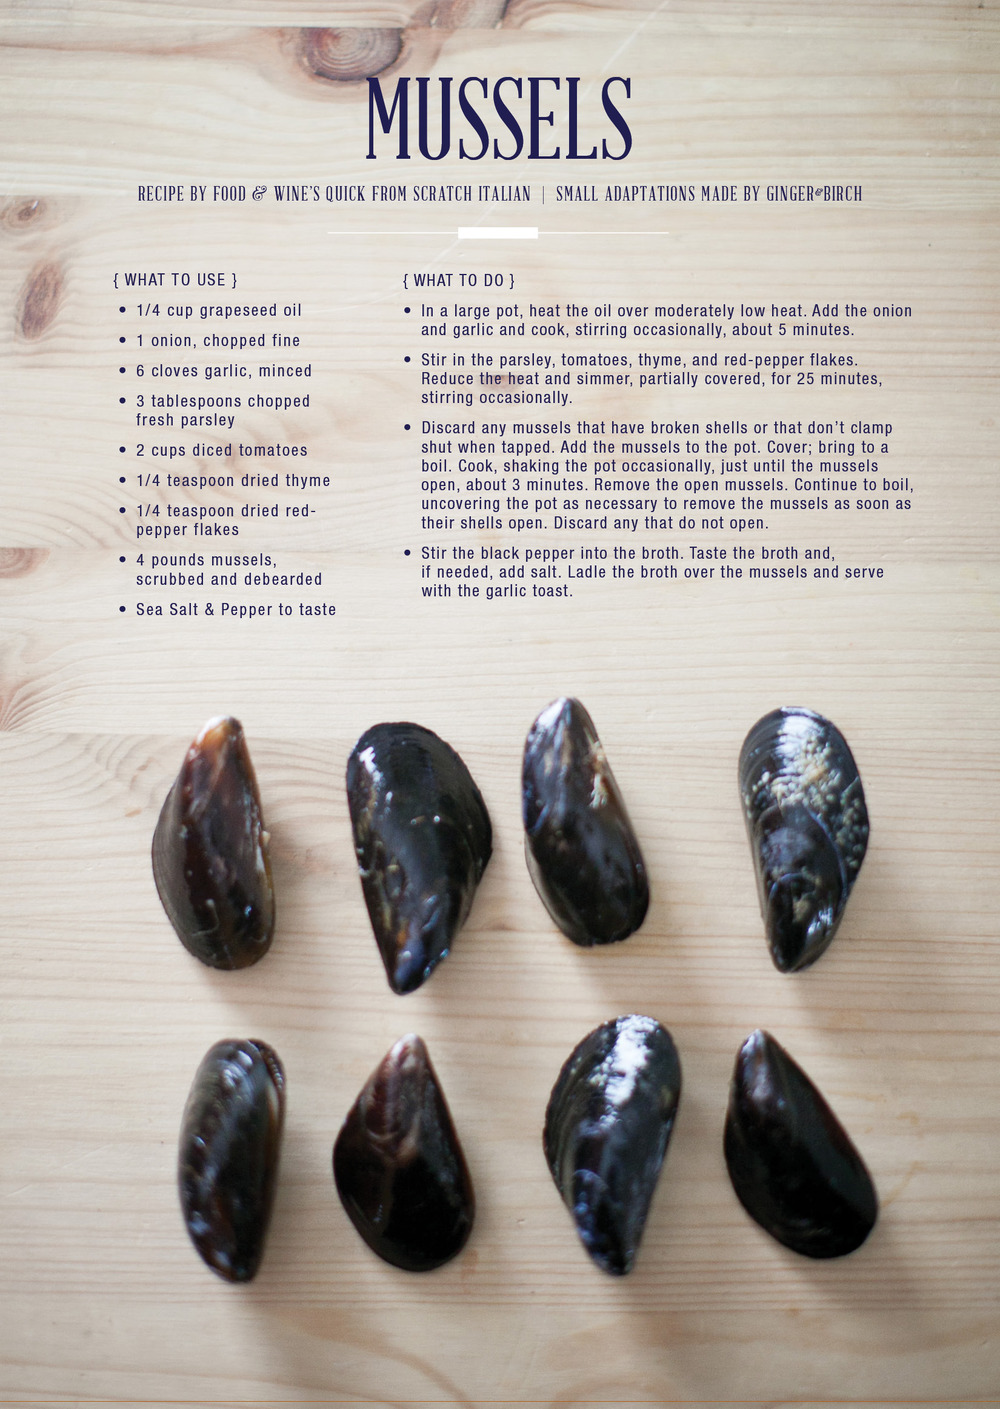 recipe by food & wine  |  image by lily glass